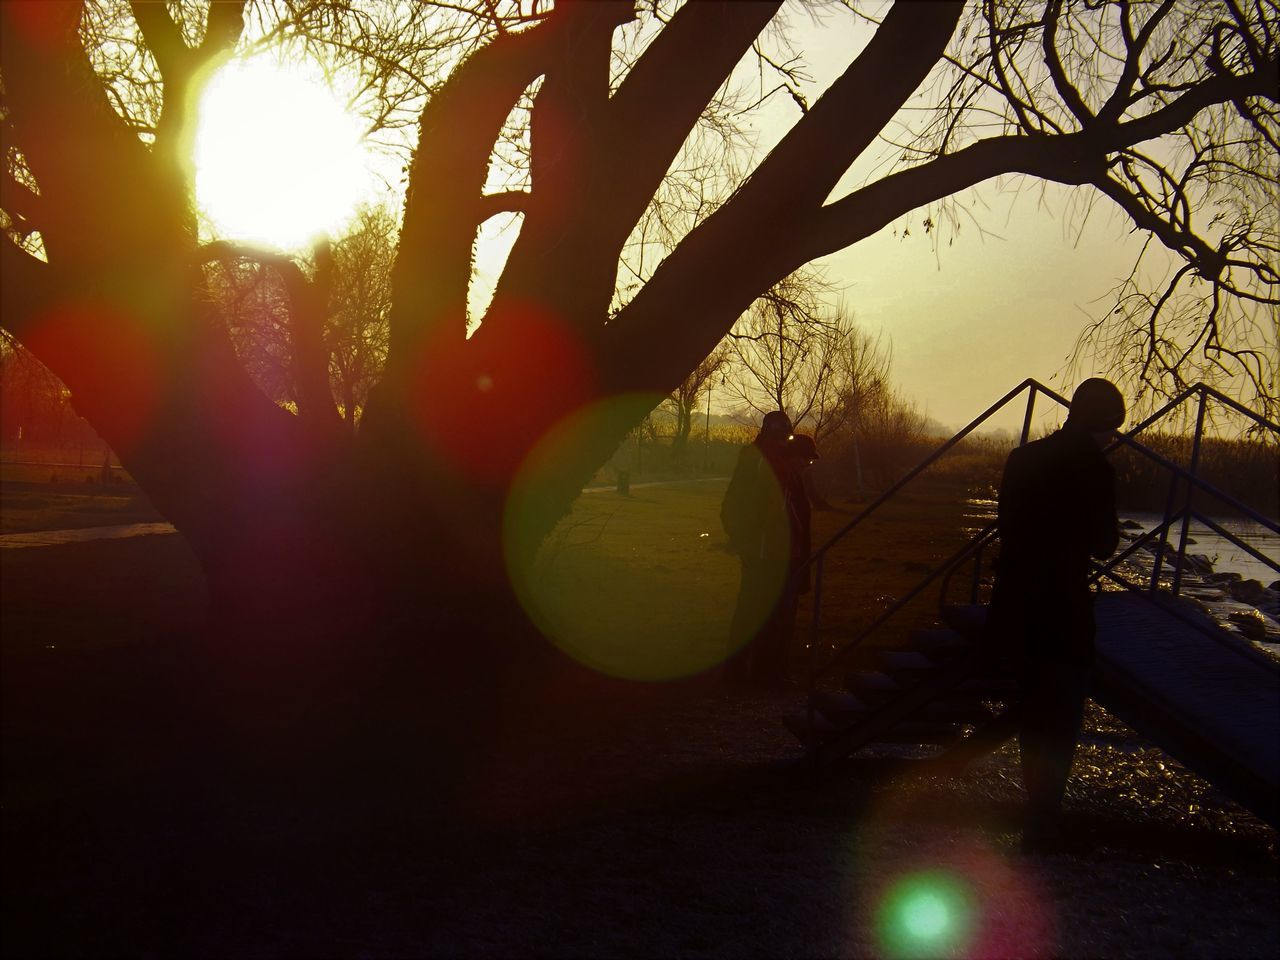 Best Of EyeEm Circle Lenses Circle Of Light Circles Circles In Circles Colorful Colorful Lights Dark Silhouette Diffraction Fault Fine Art Photography Loneliness Refraction Refractions In Light Sunlight Sunset Silhouettes Sunset_collection Tree Silhouette Warm Colors TCPM